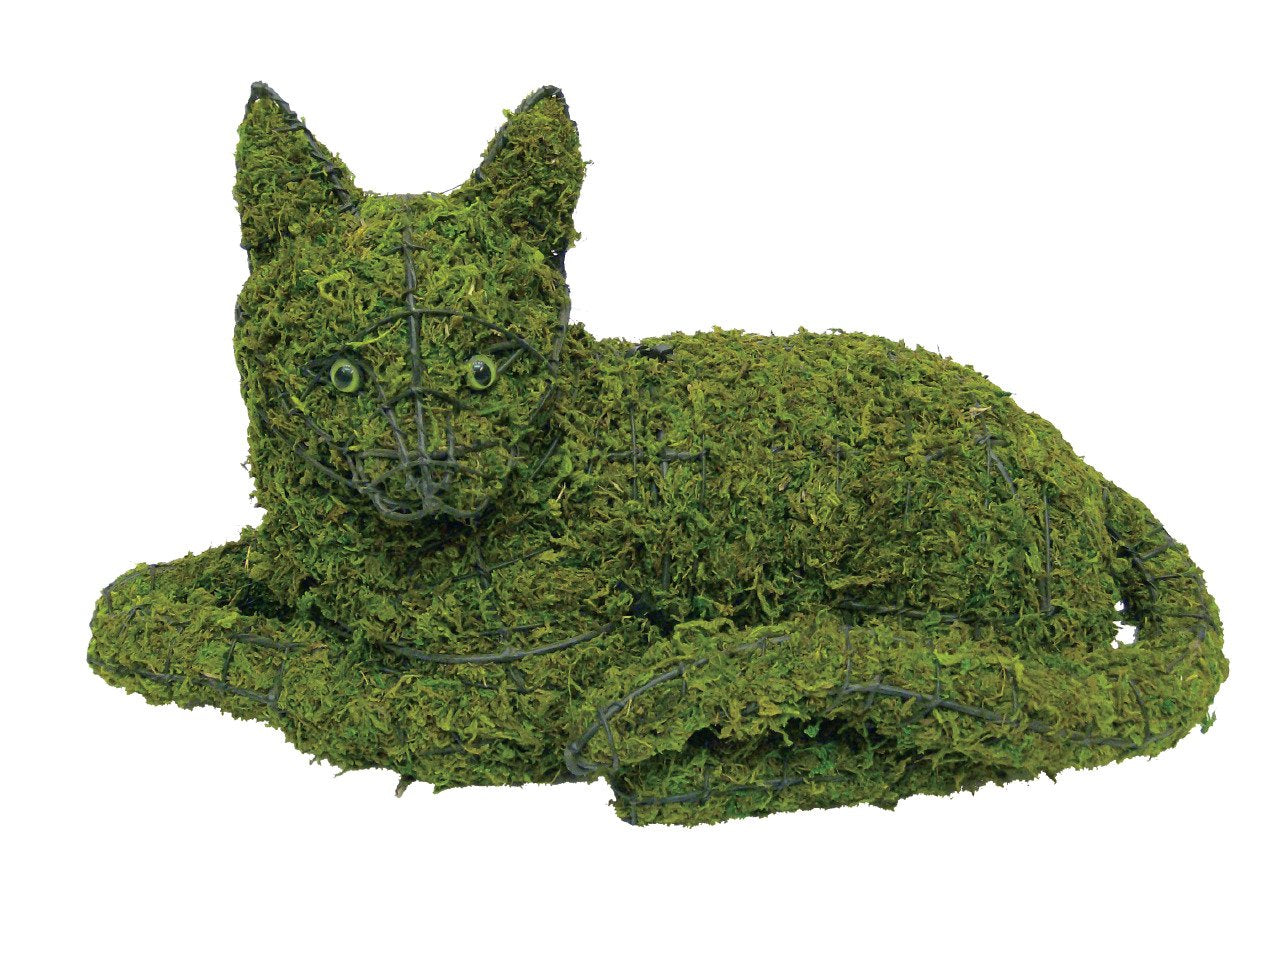 Cat lying down steel topiary frame filled with grren dyed sphagnum moss - Henderson Garden Supply